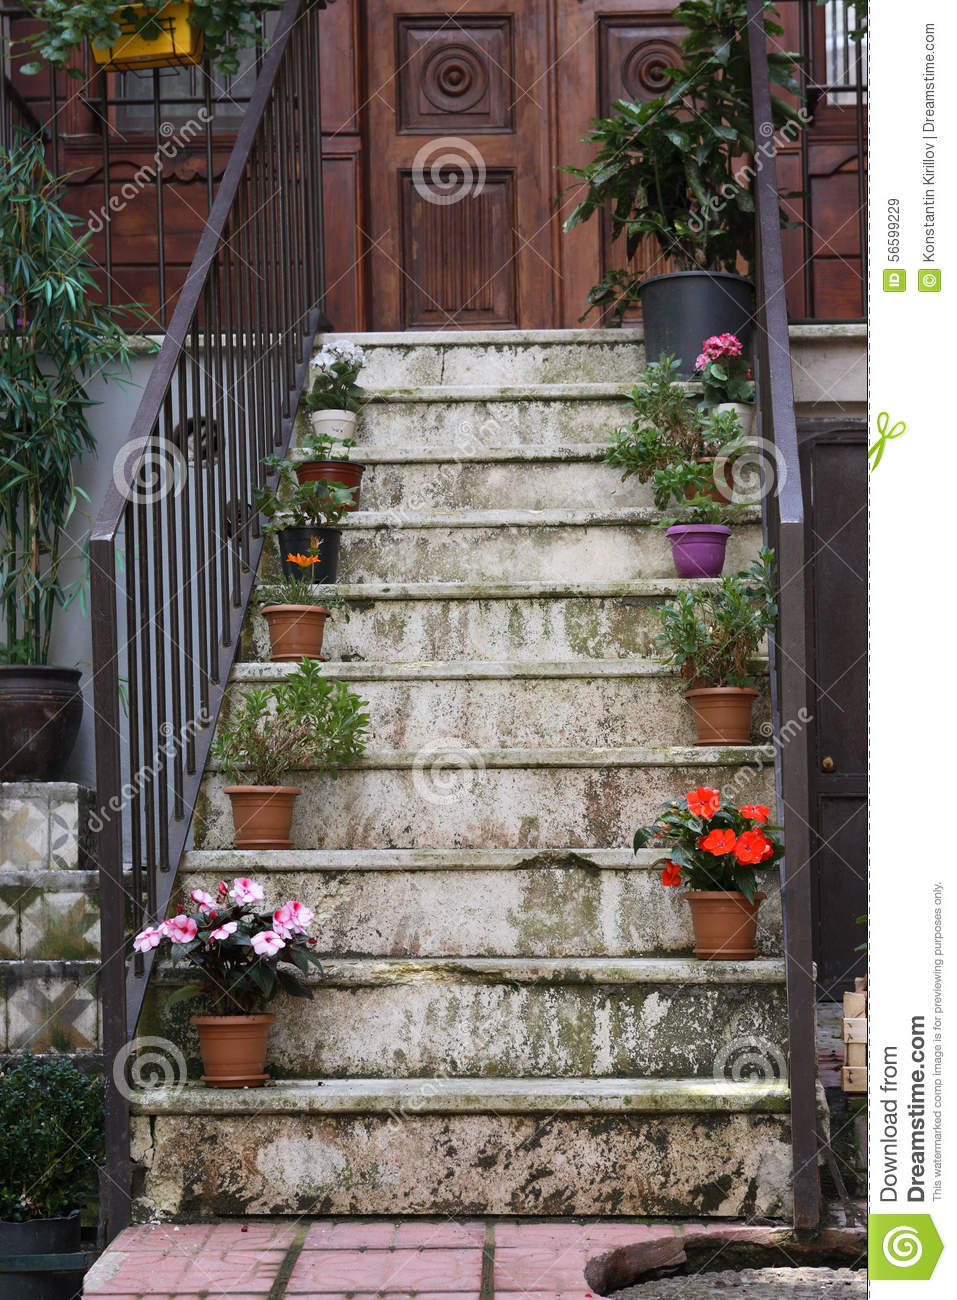 Flowers On Staircase editorial stock image Image of town 56599229